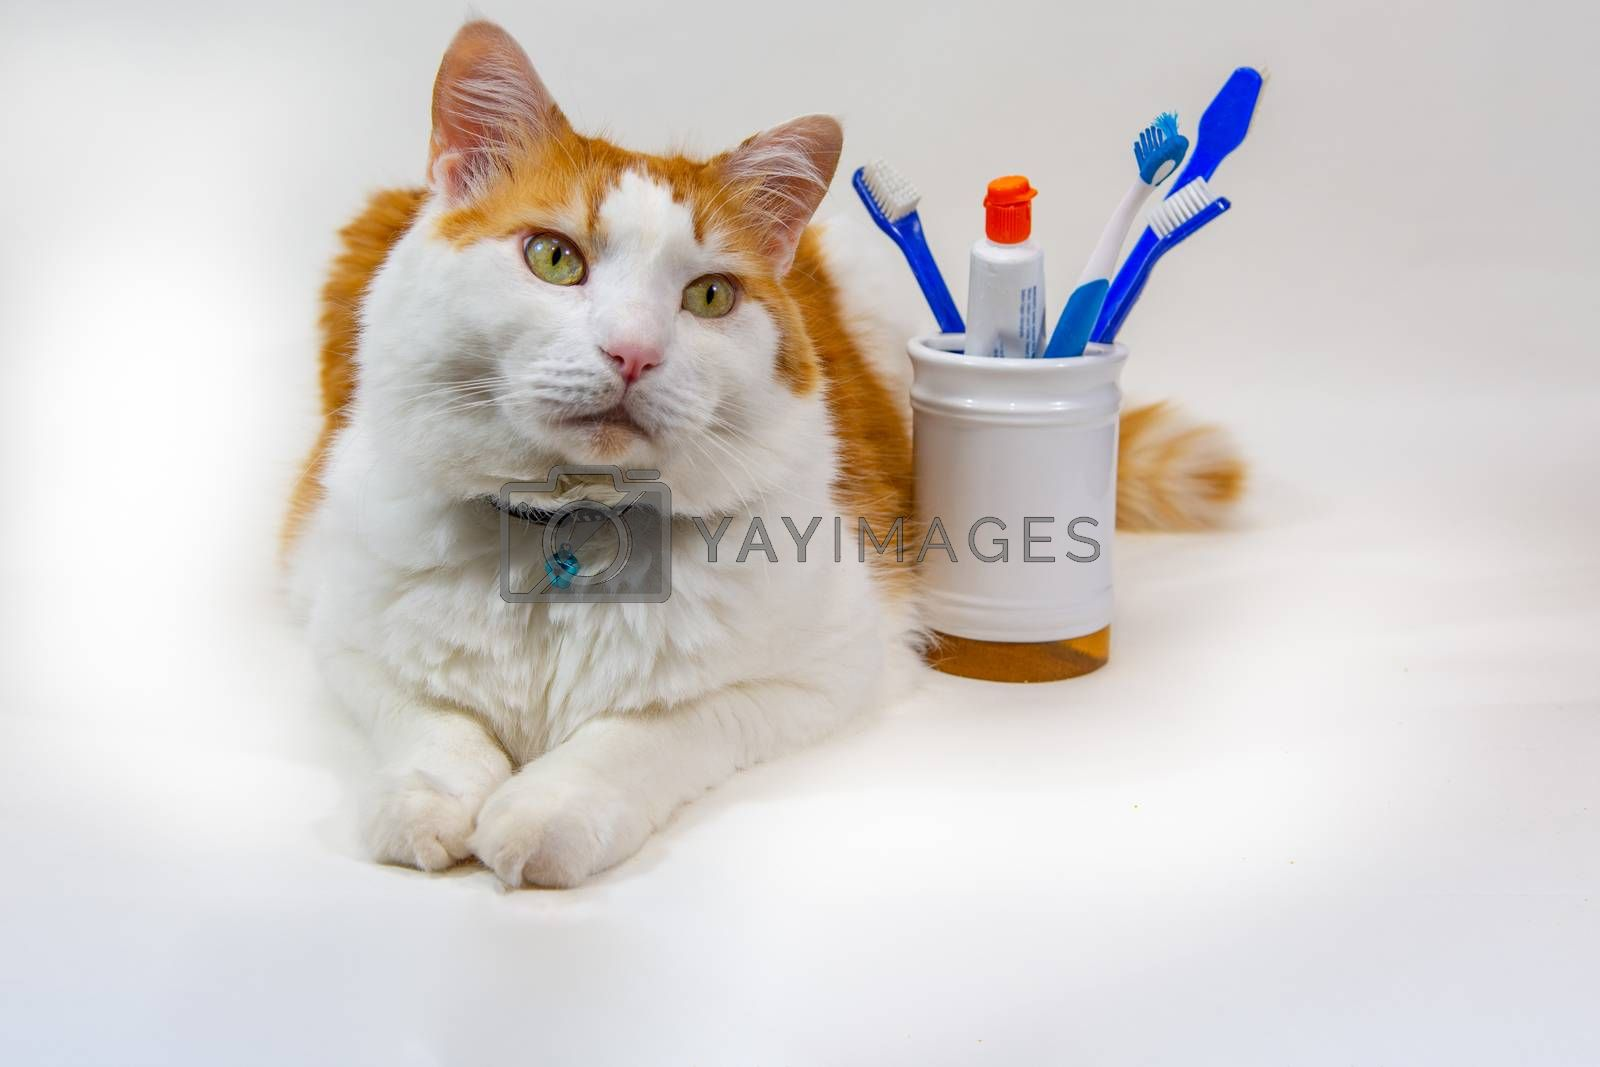 White-red cat against a white background and toothbrushes in a glass near